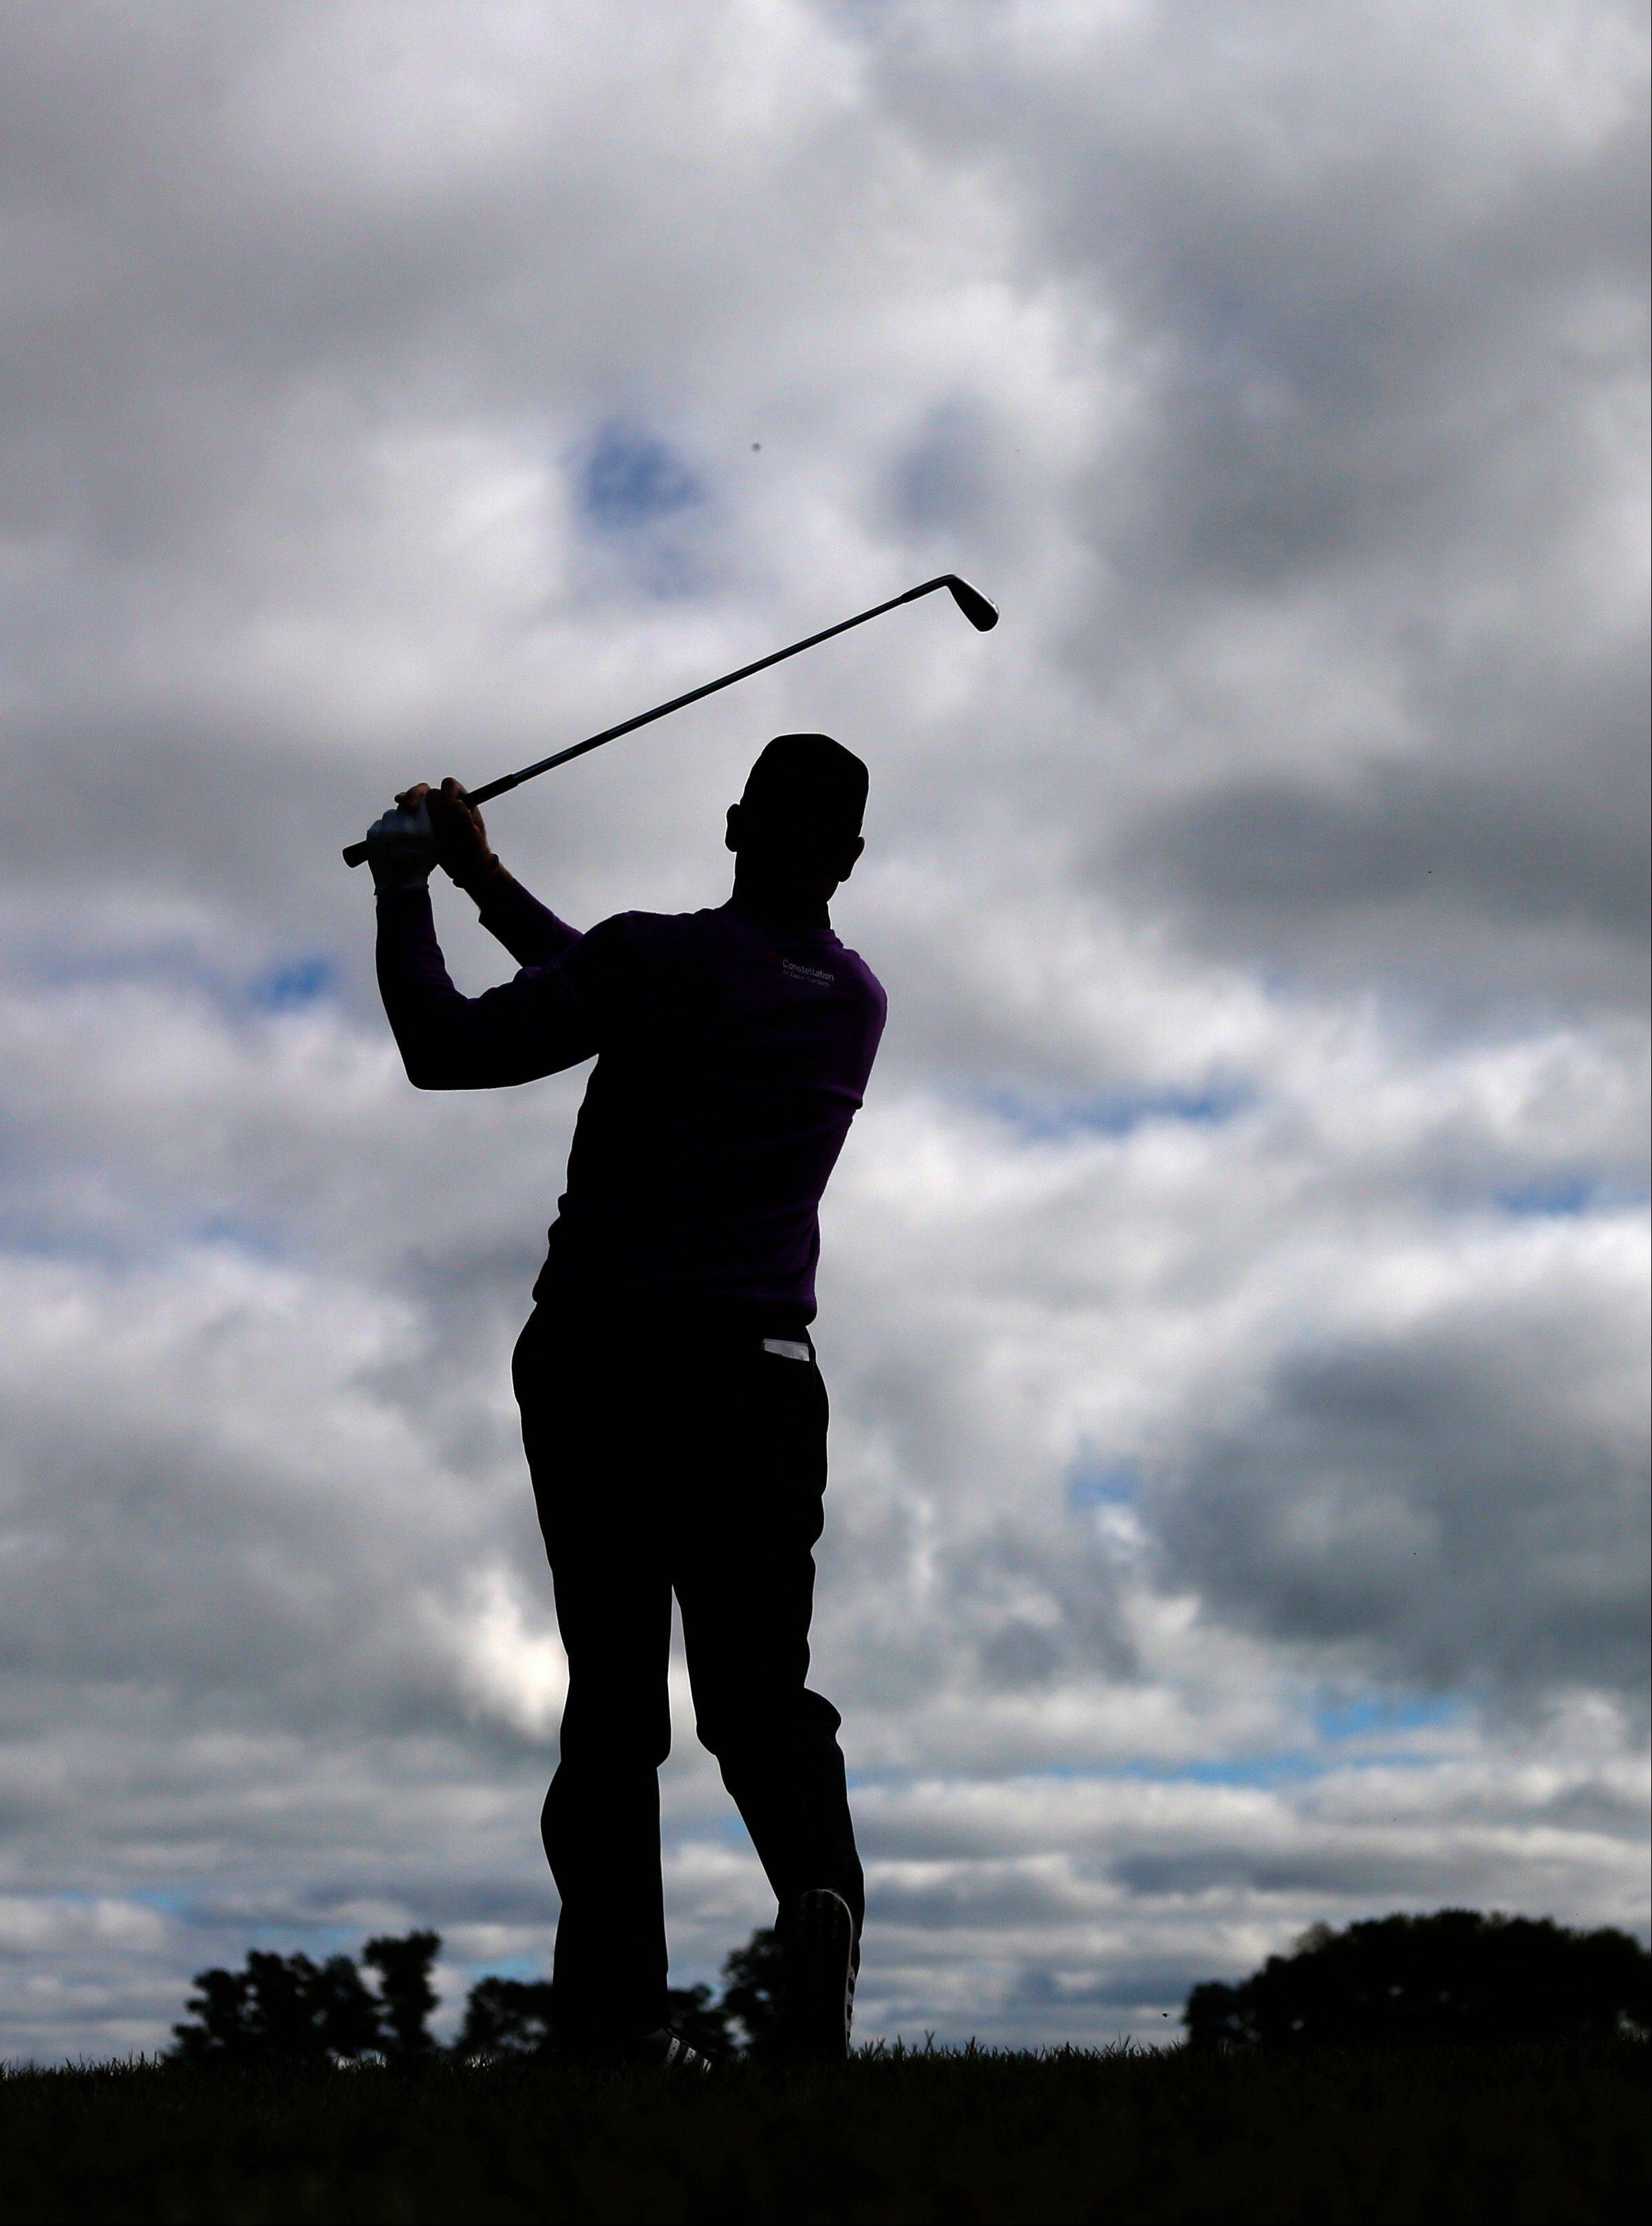 Jim Furyk is silhouetted after hitting his approach shot on the 3rd fairway.